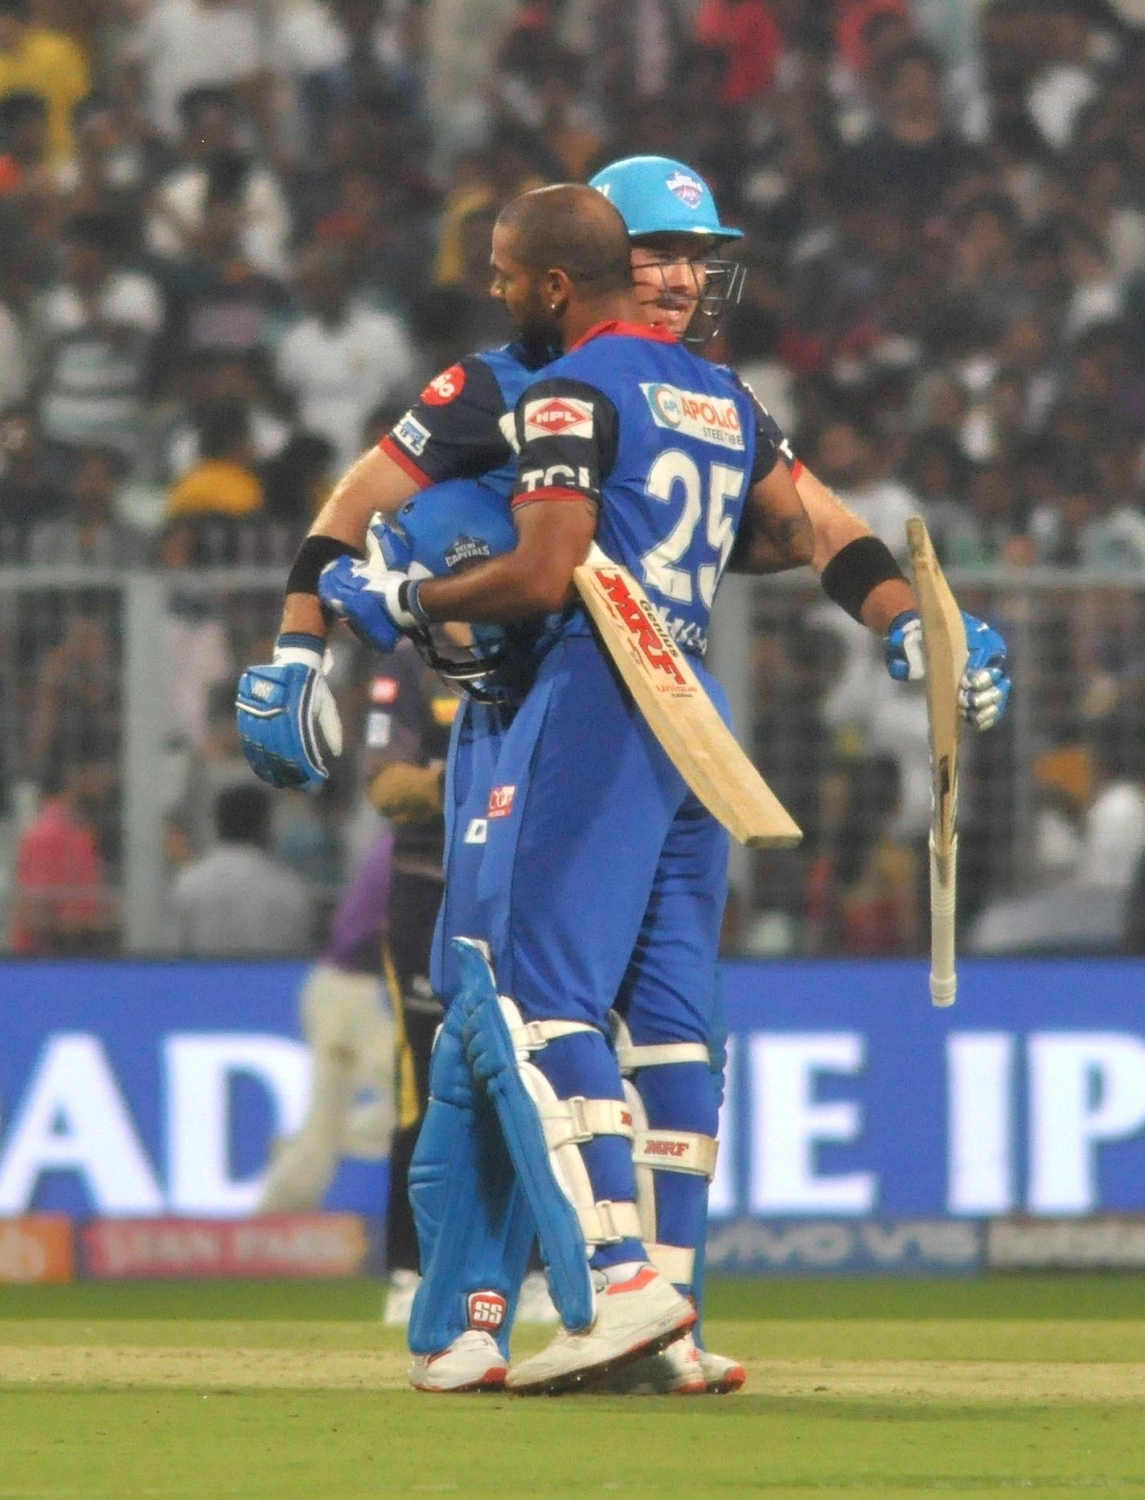 There was no love lost between Dhawan and Ingram as they hugged after Delhi Capitals' victory | IANS